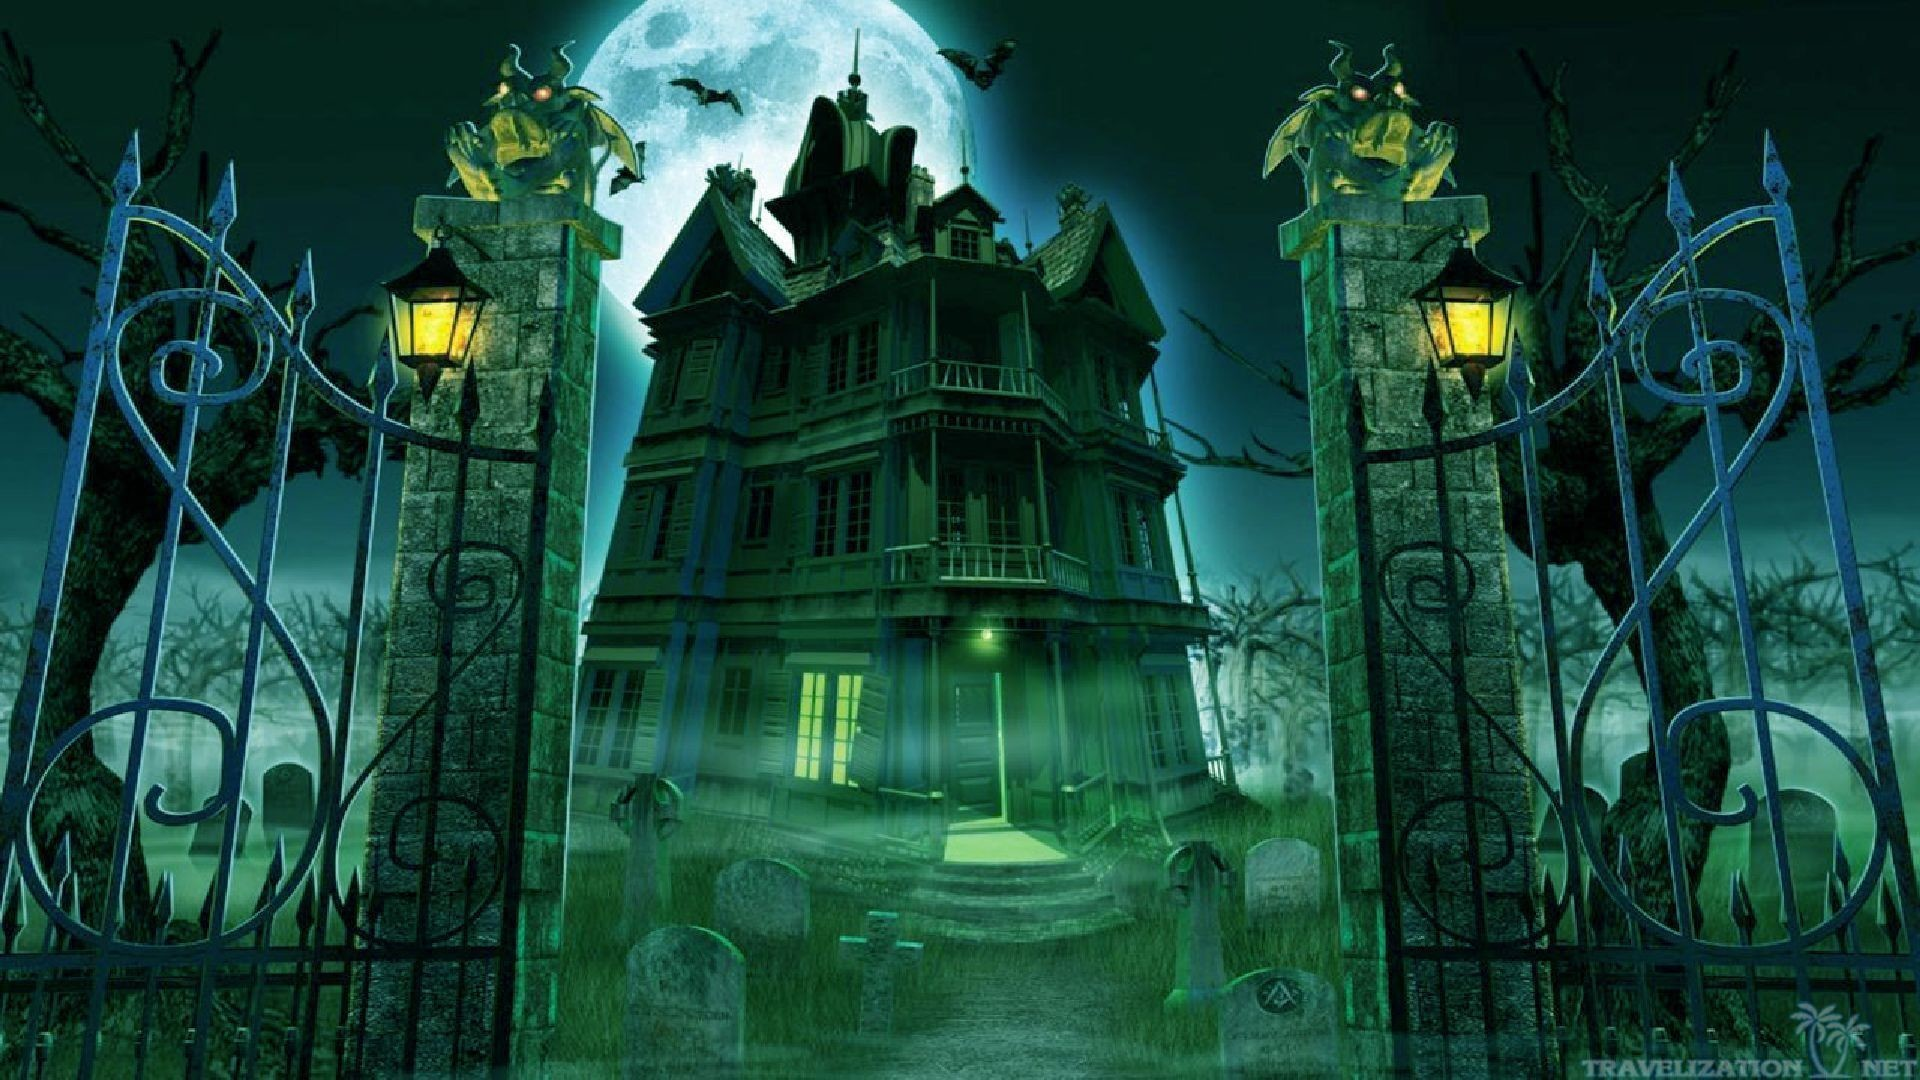 Scary Hd Wallpapers Hd Wallpaper Collections 4kwallpaper